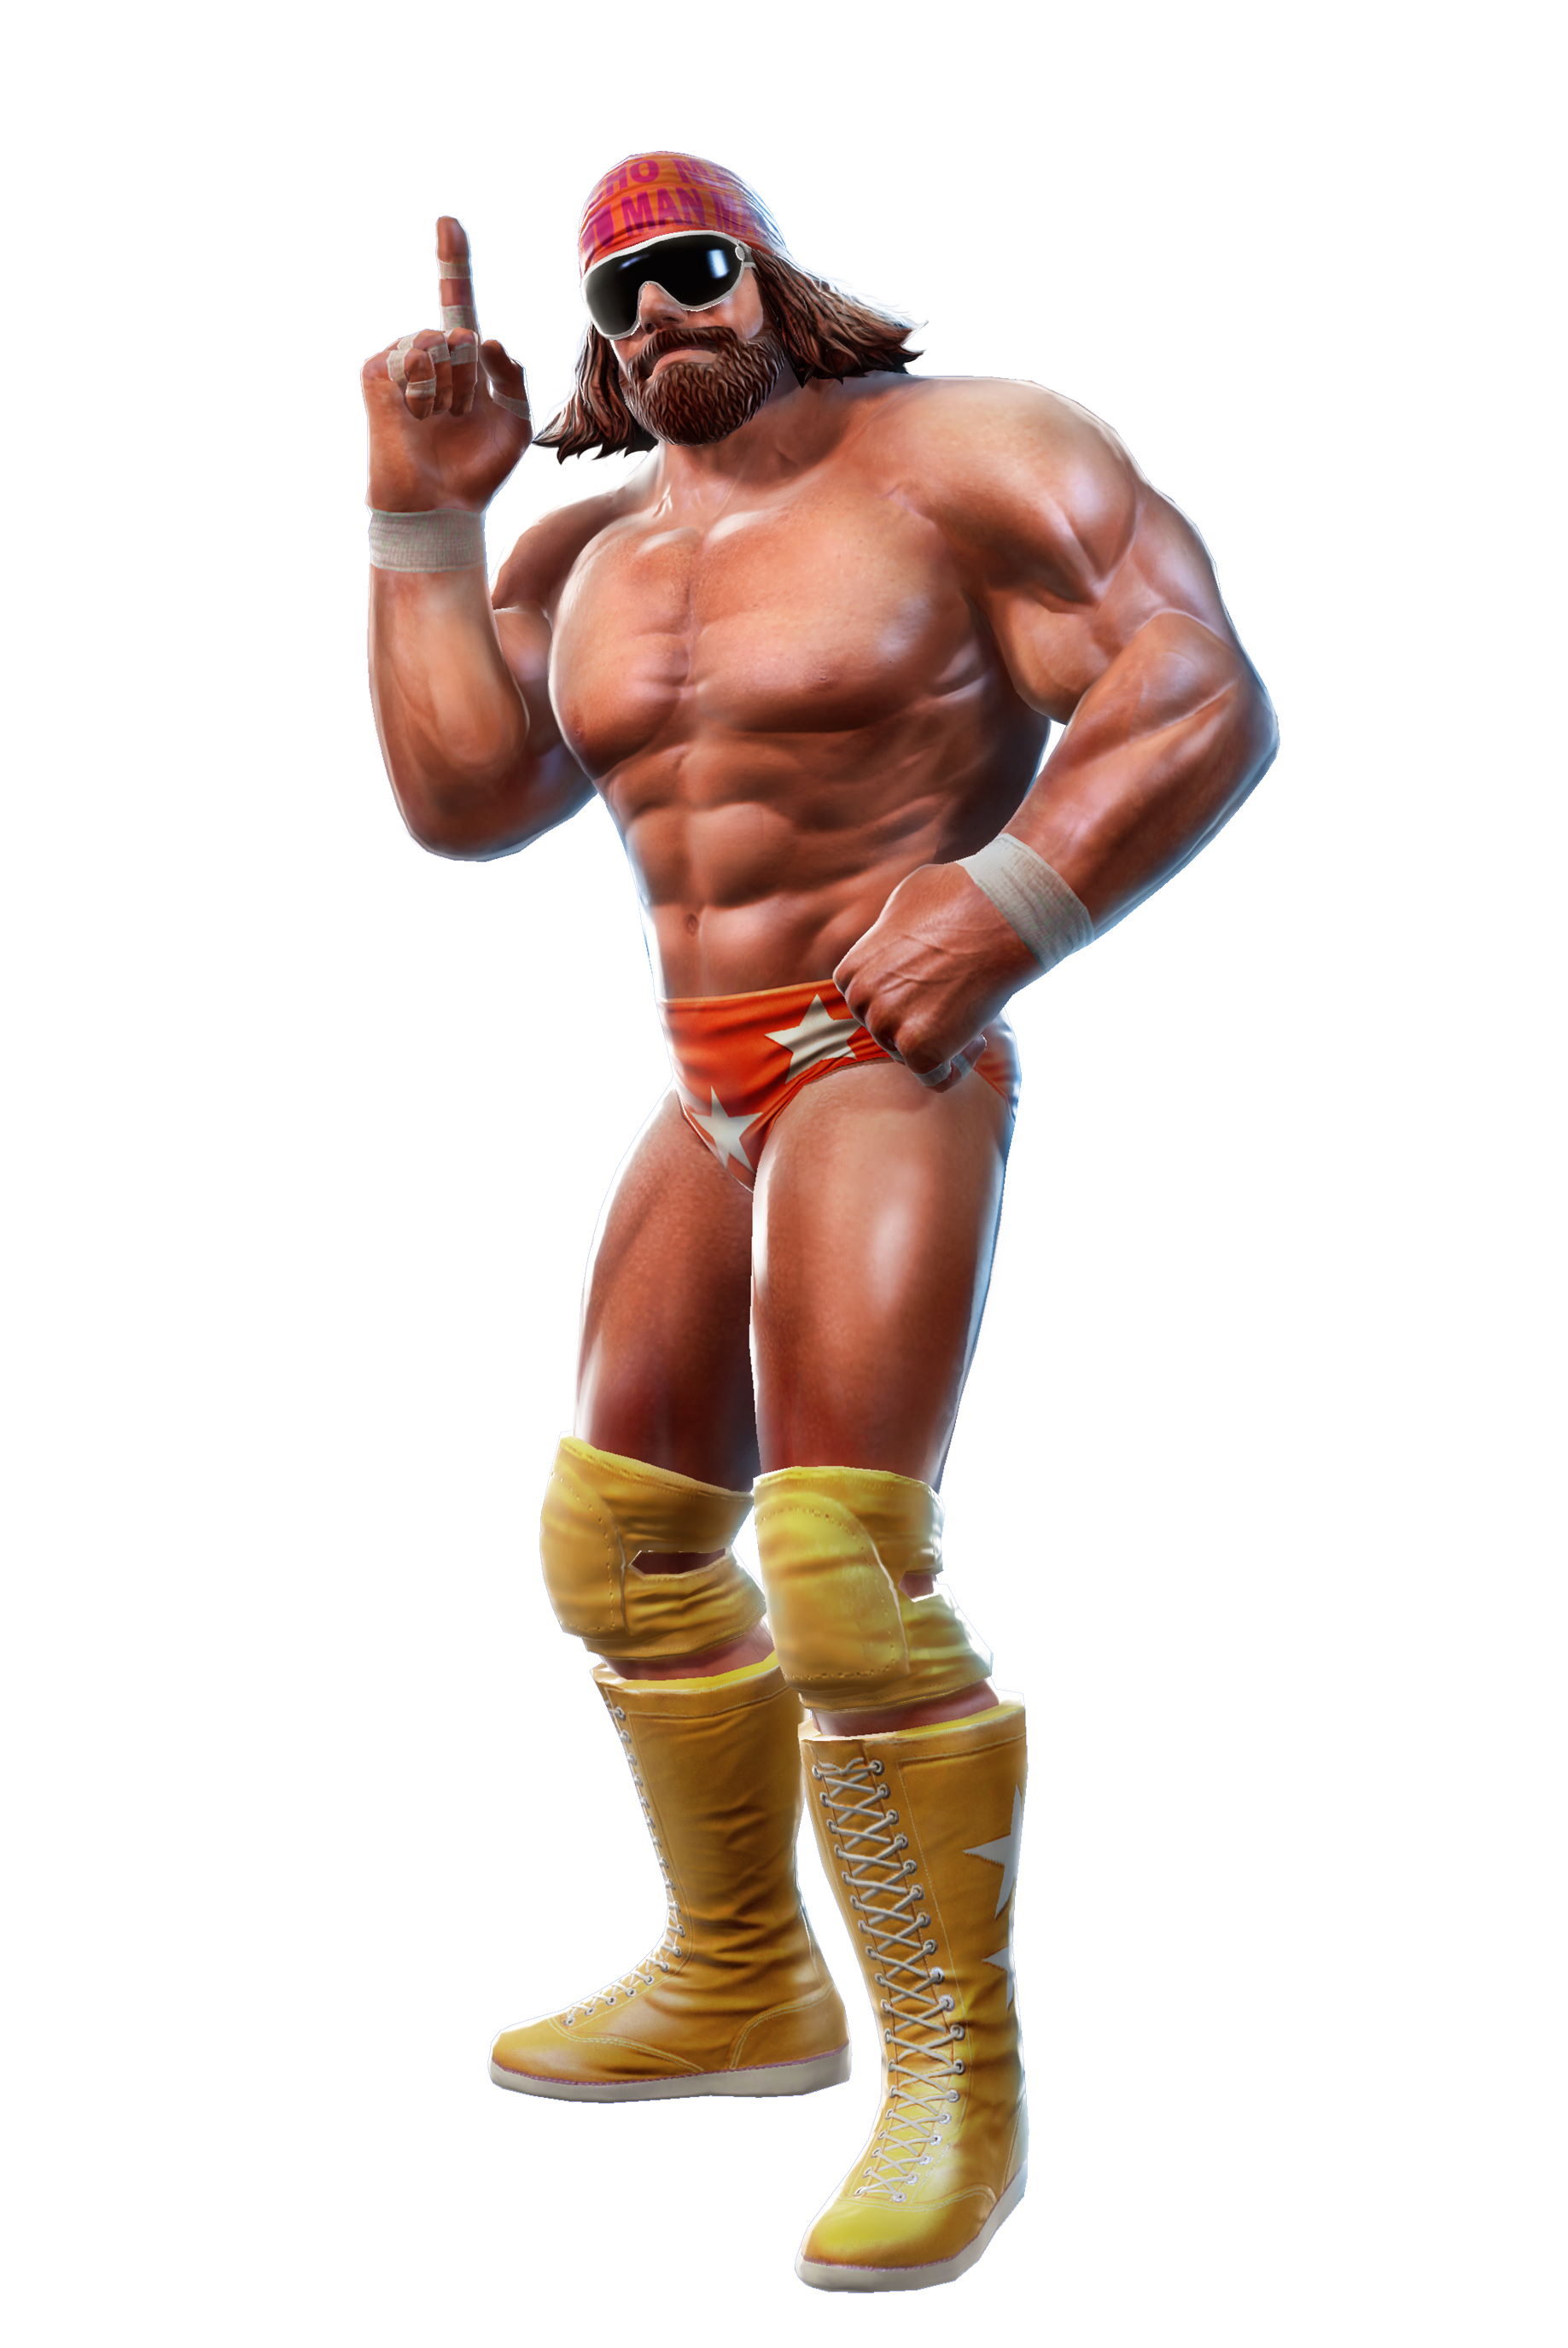 Download Randy Savage File HQ PNG Image.